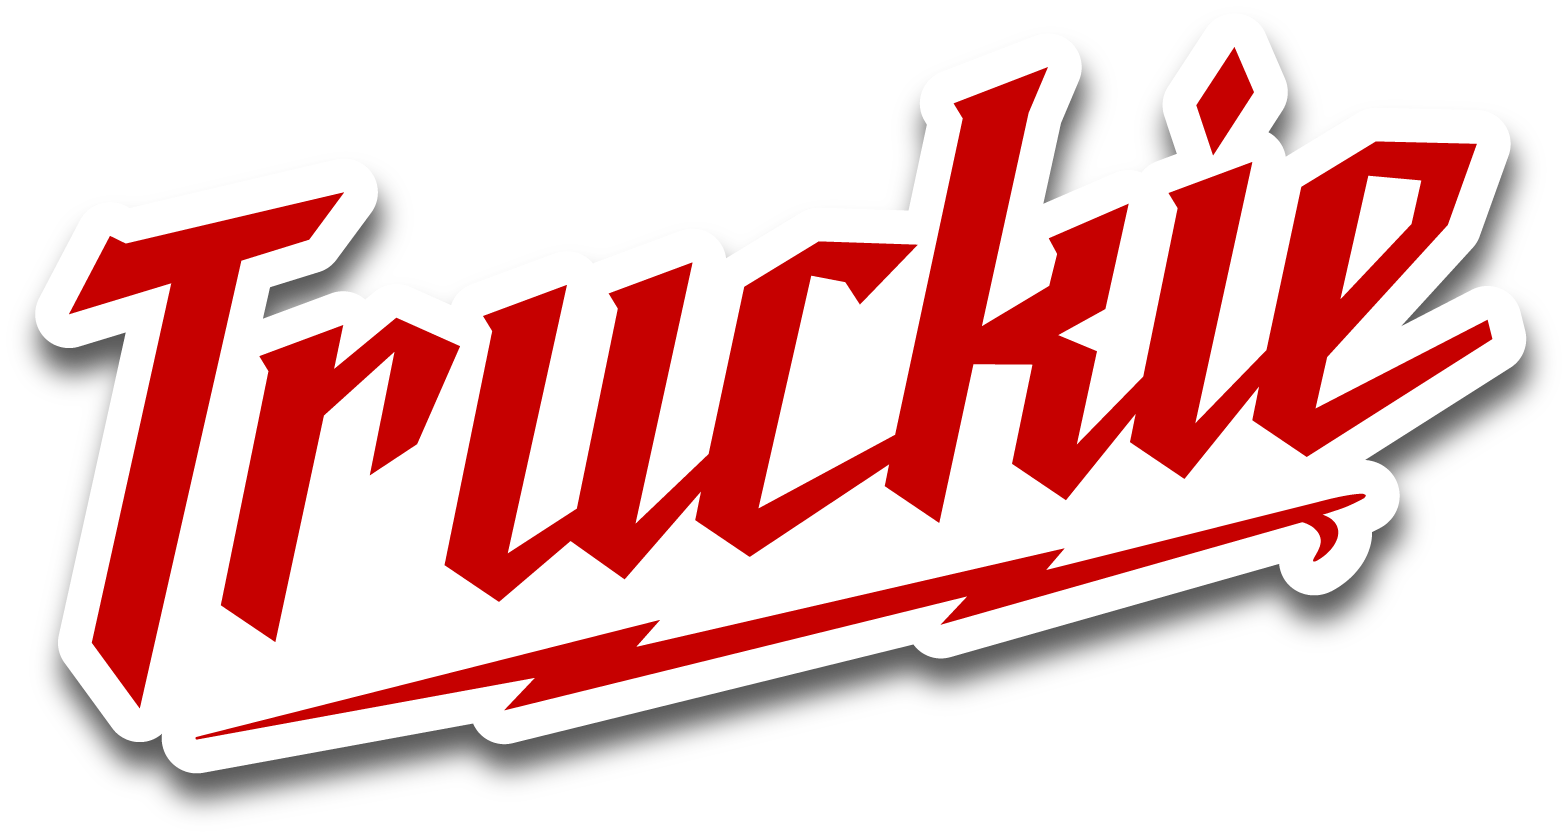 Truckie Decal